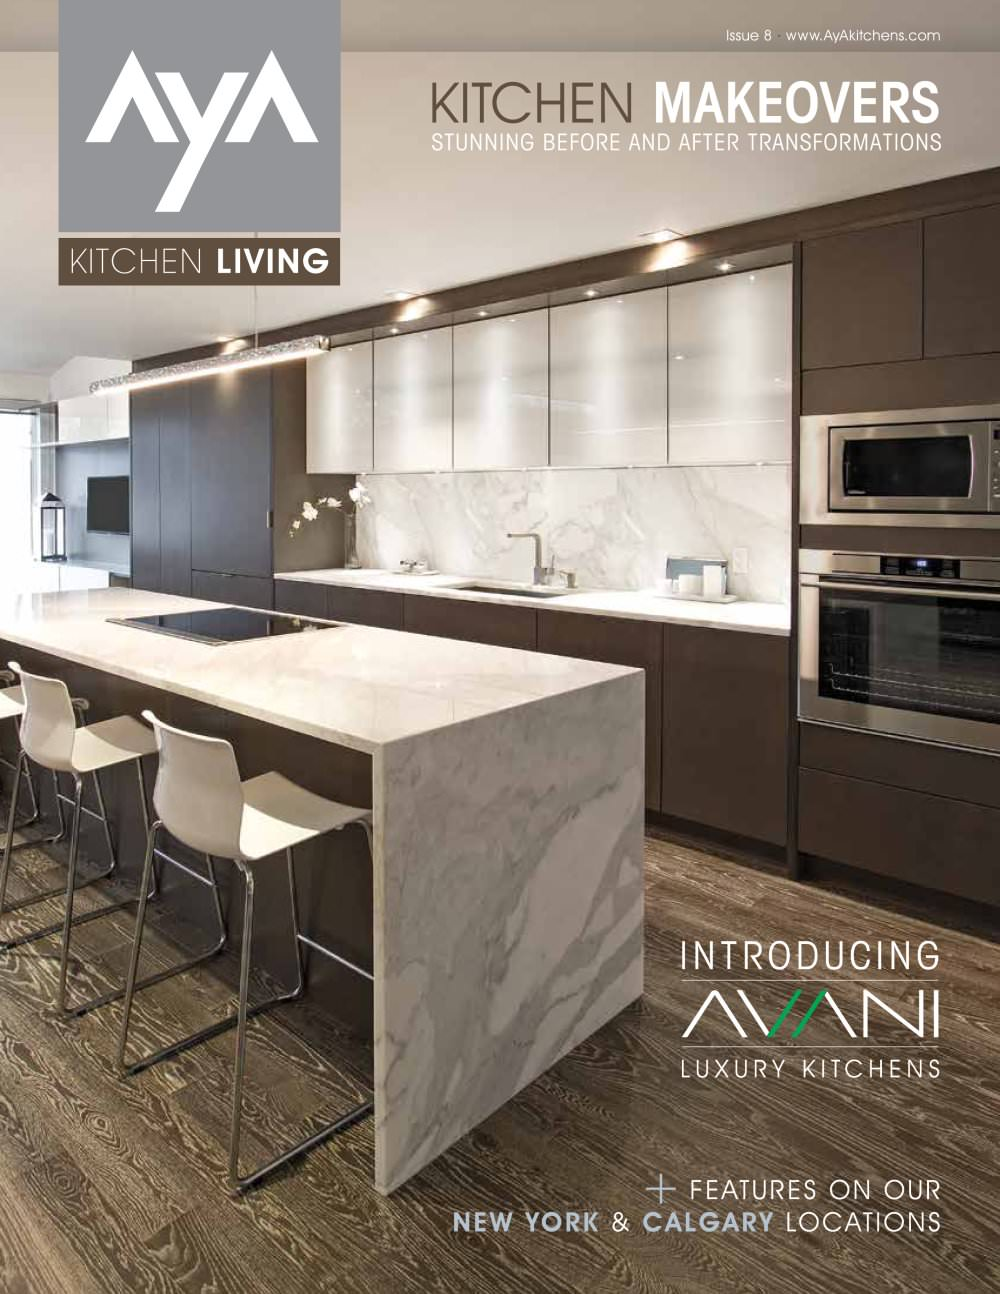 Kitchen Living Aya Kitchen Living Issue 8 Aya Kitchens Pdf Catalogues